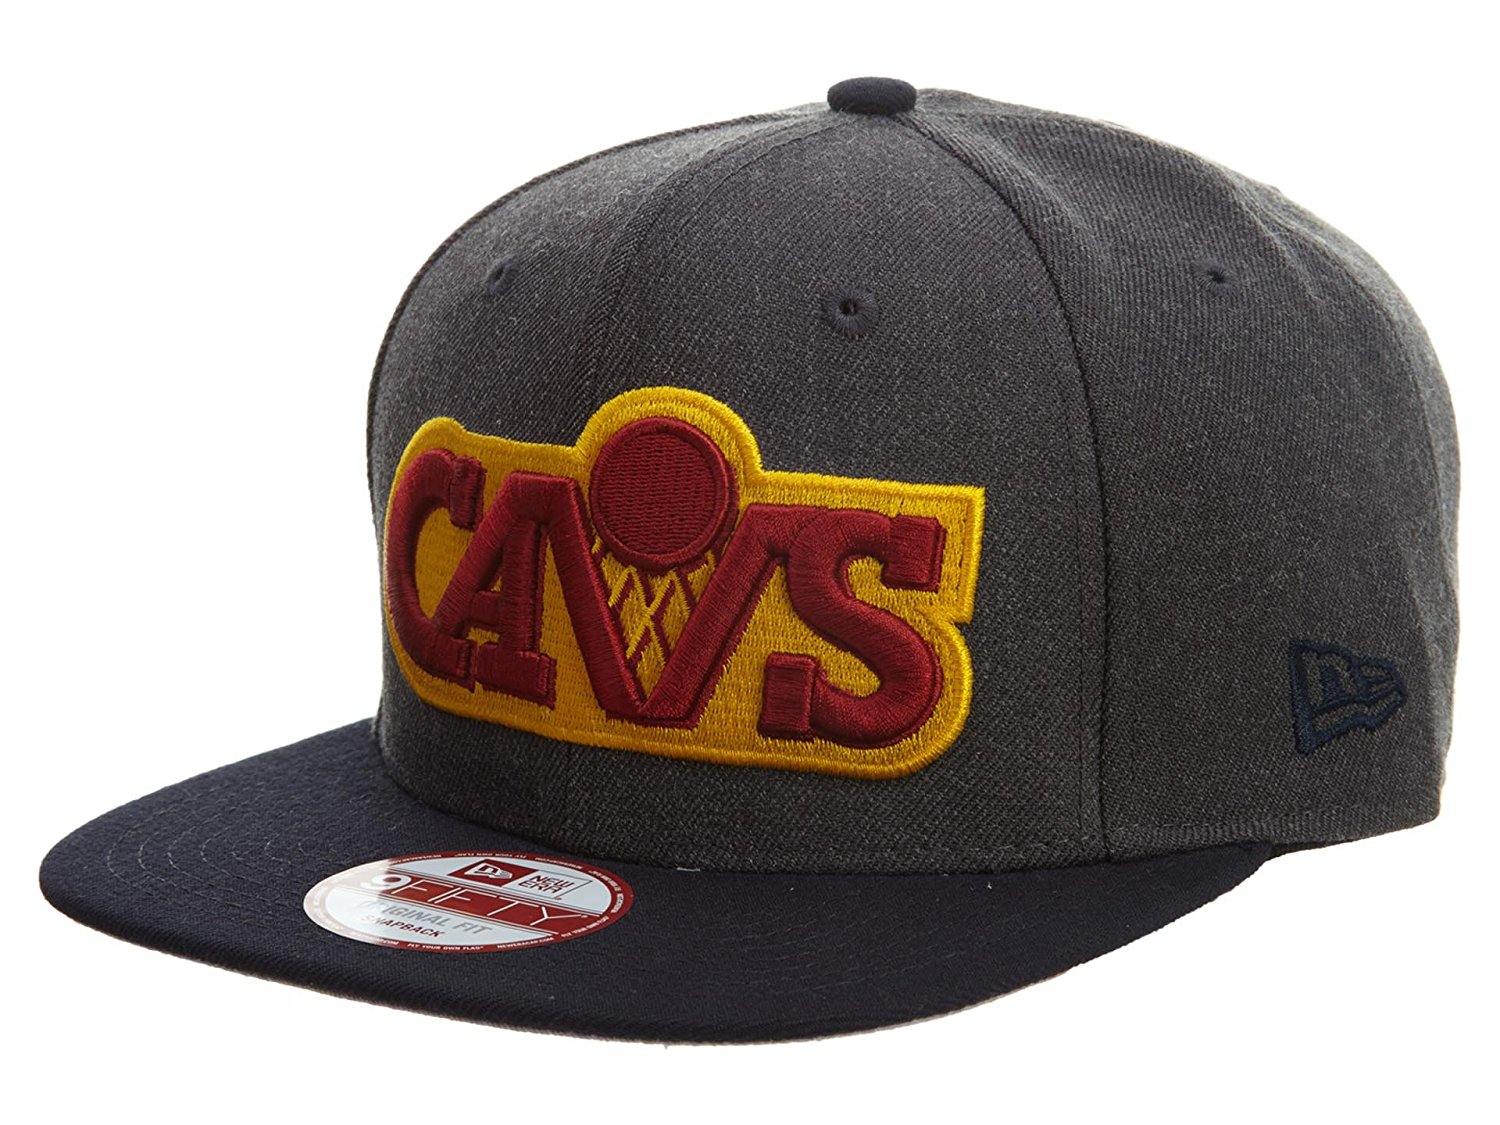 cd50cf24cb4390 Get Quotations · New Era Cleveland Cavaliers NBA 9FIFTY Heather Graphite  Snapback Cap